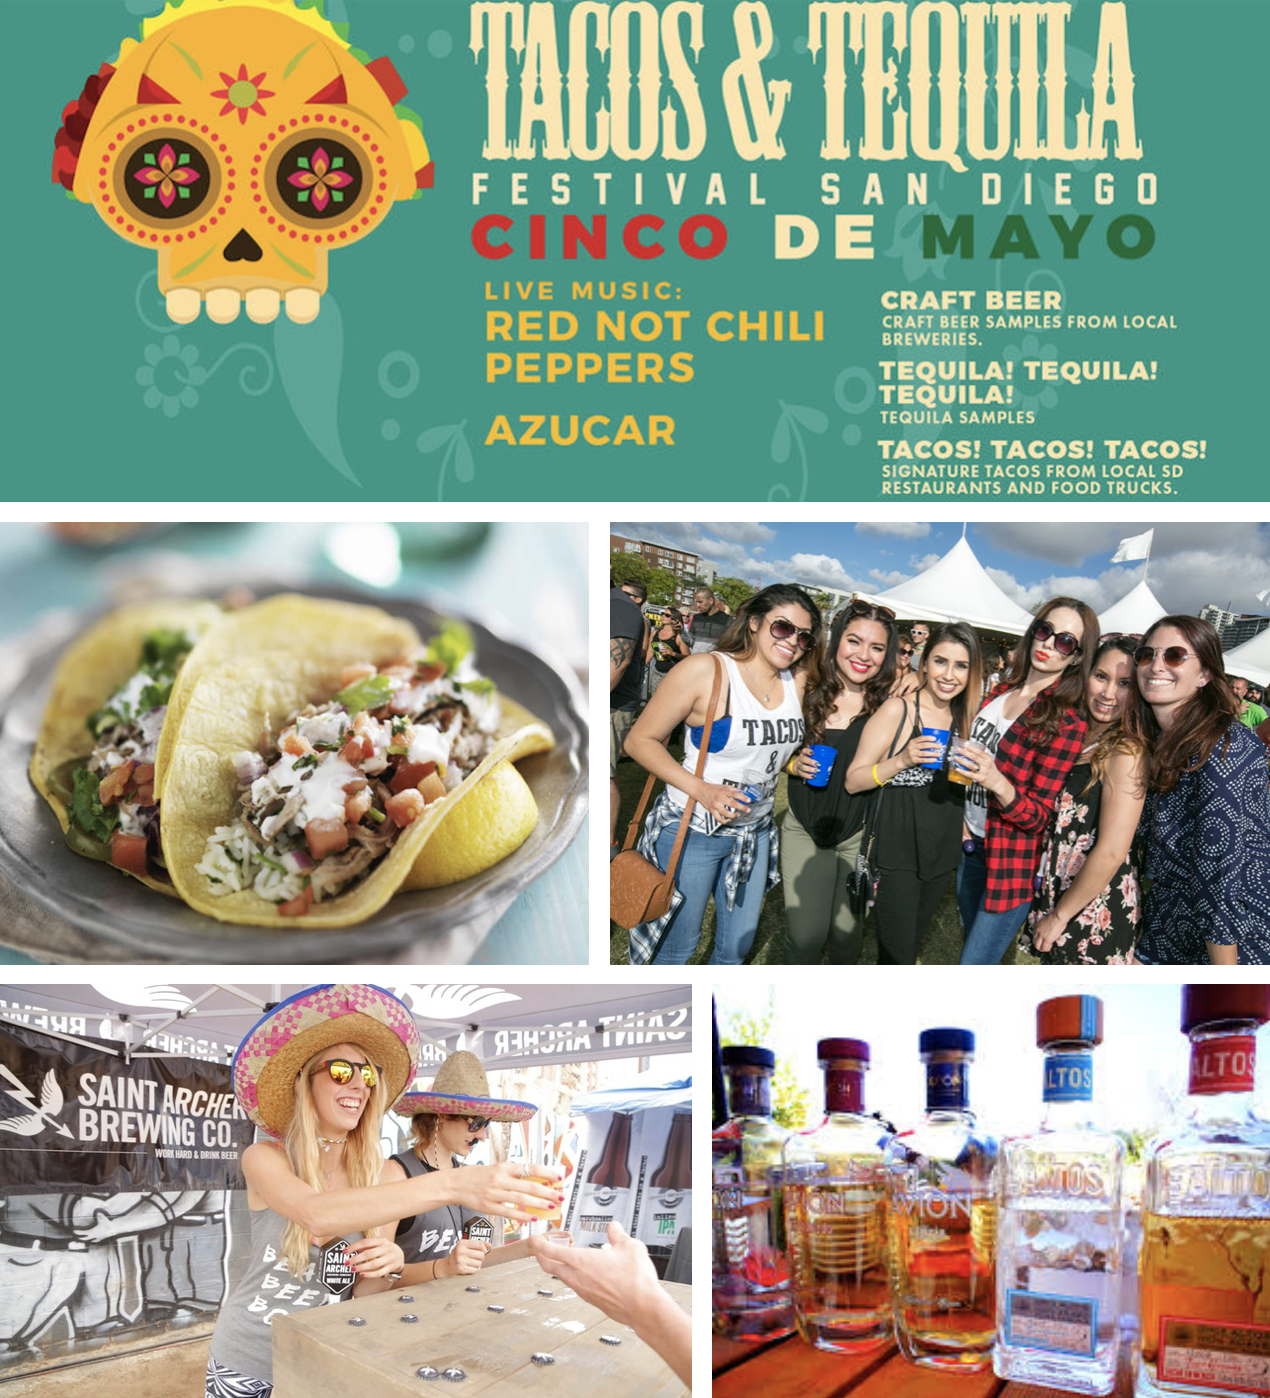 Promo code SDVILLE saves $5 per ticket to the San Diego Tacos & Tequila Festival - May 5!